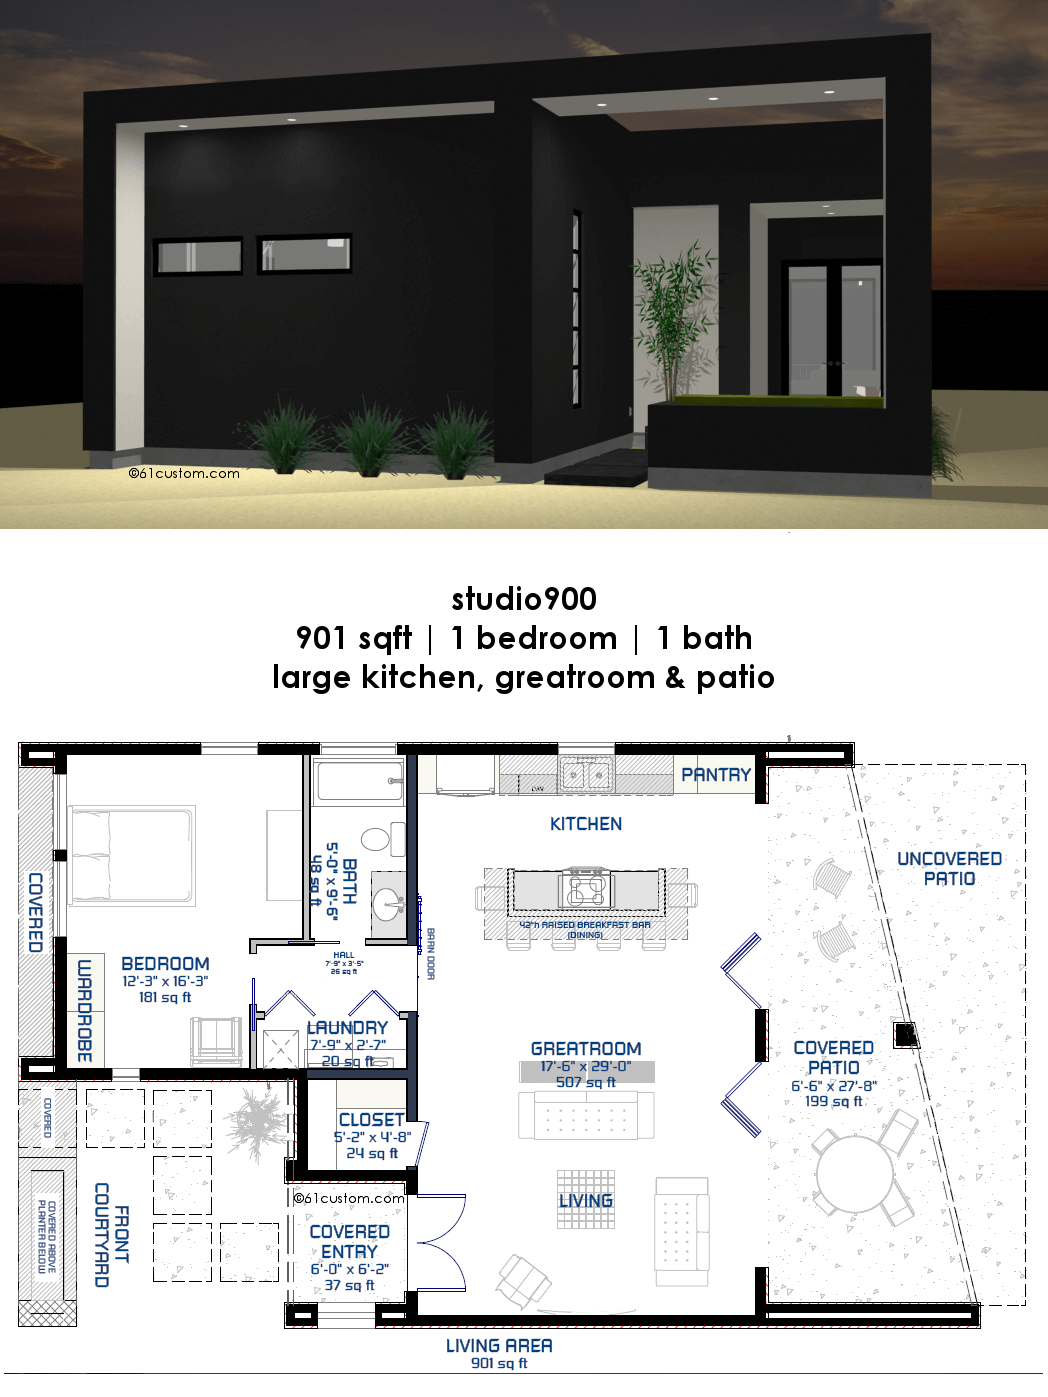 Studio900 small modern house plan with courtyard 61custom for Contemporary floor plans